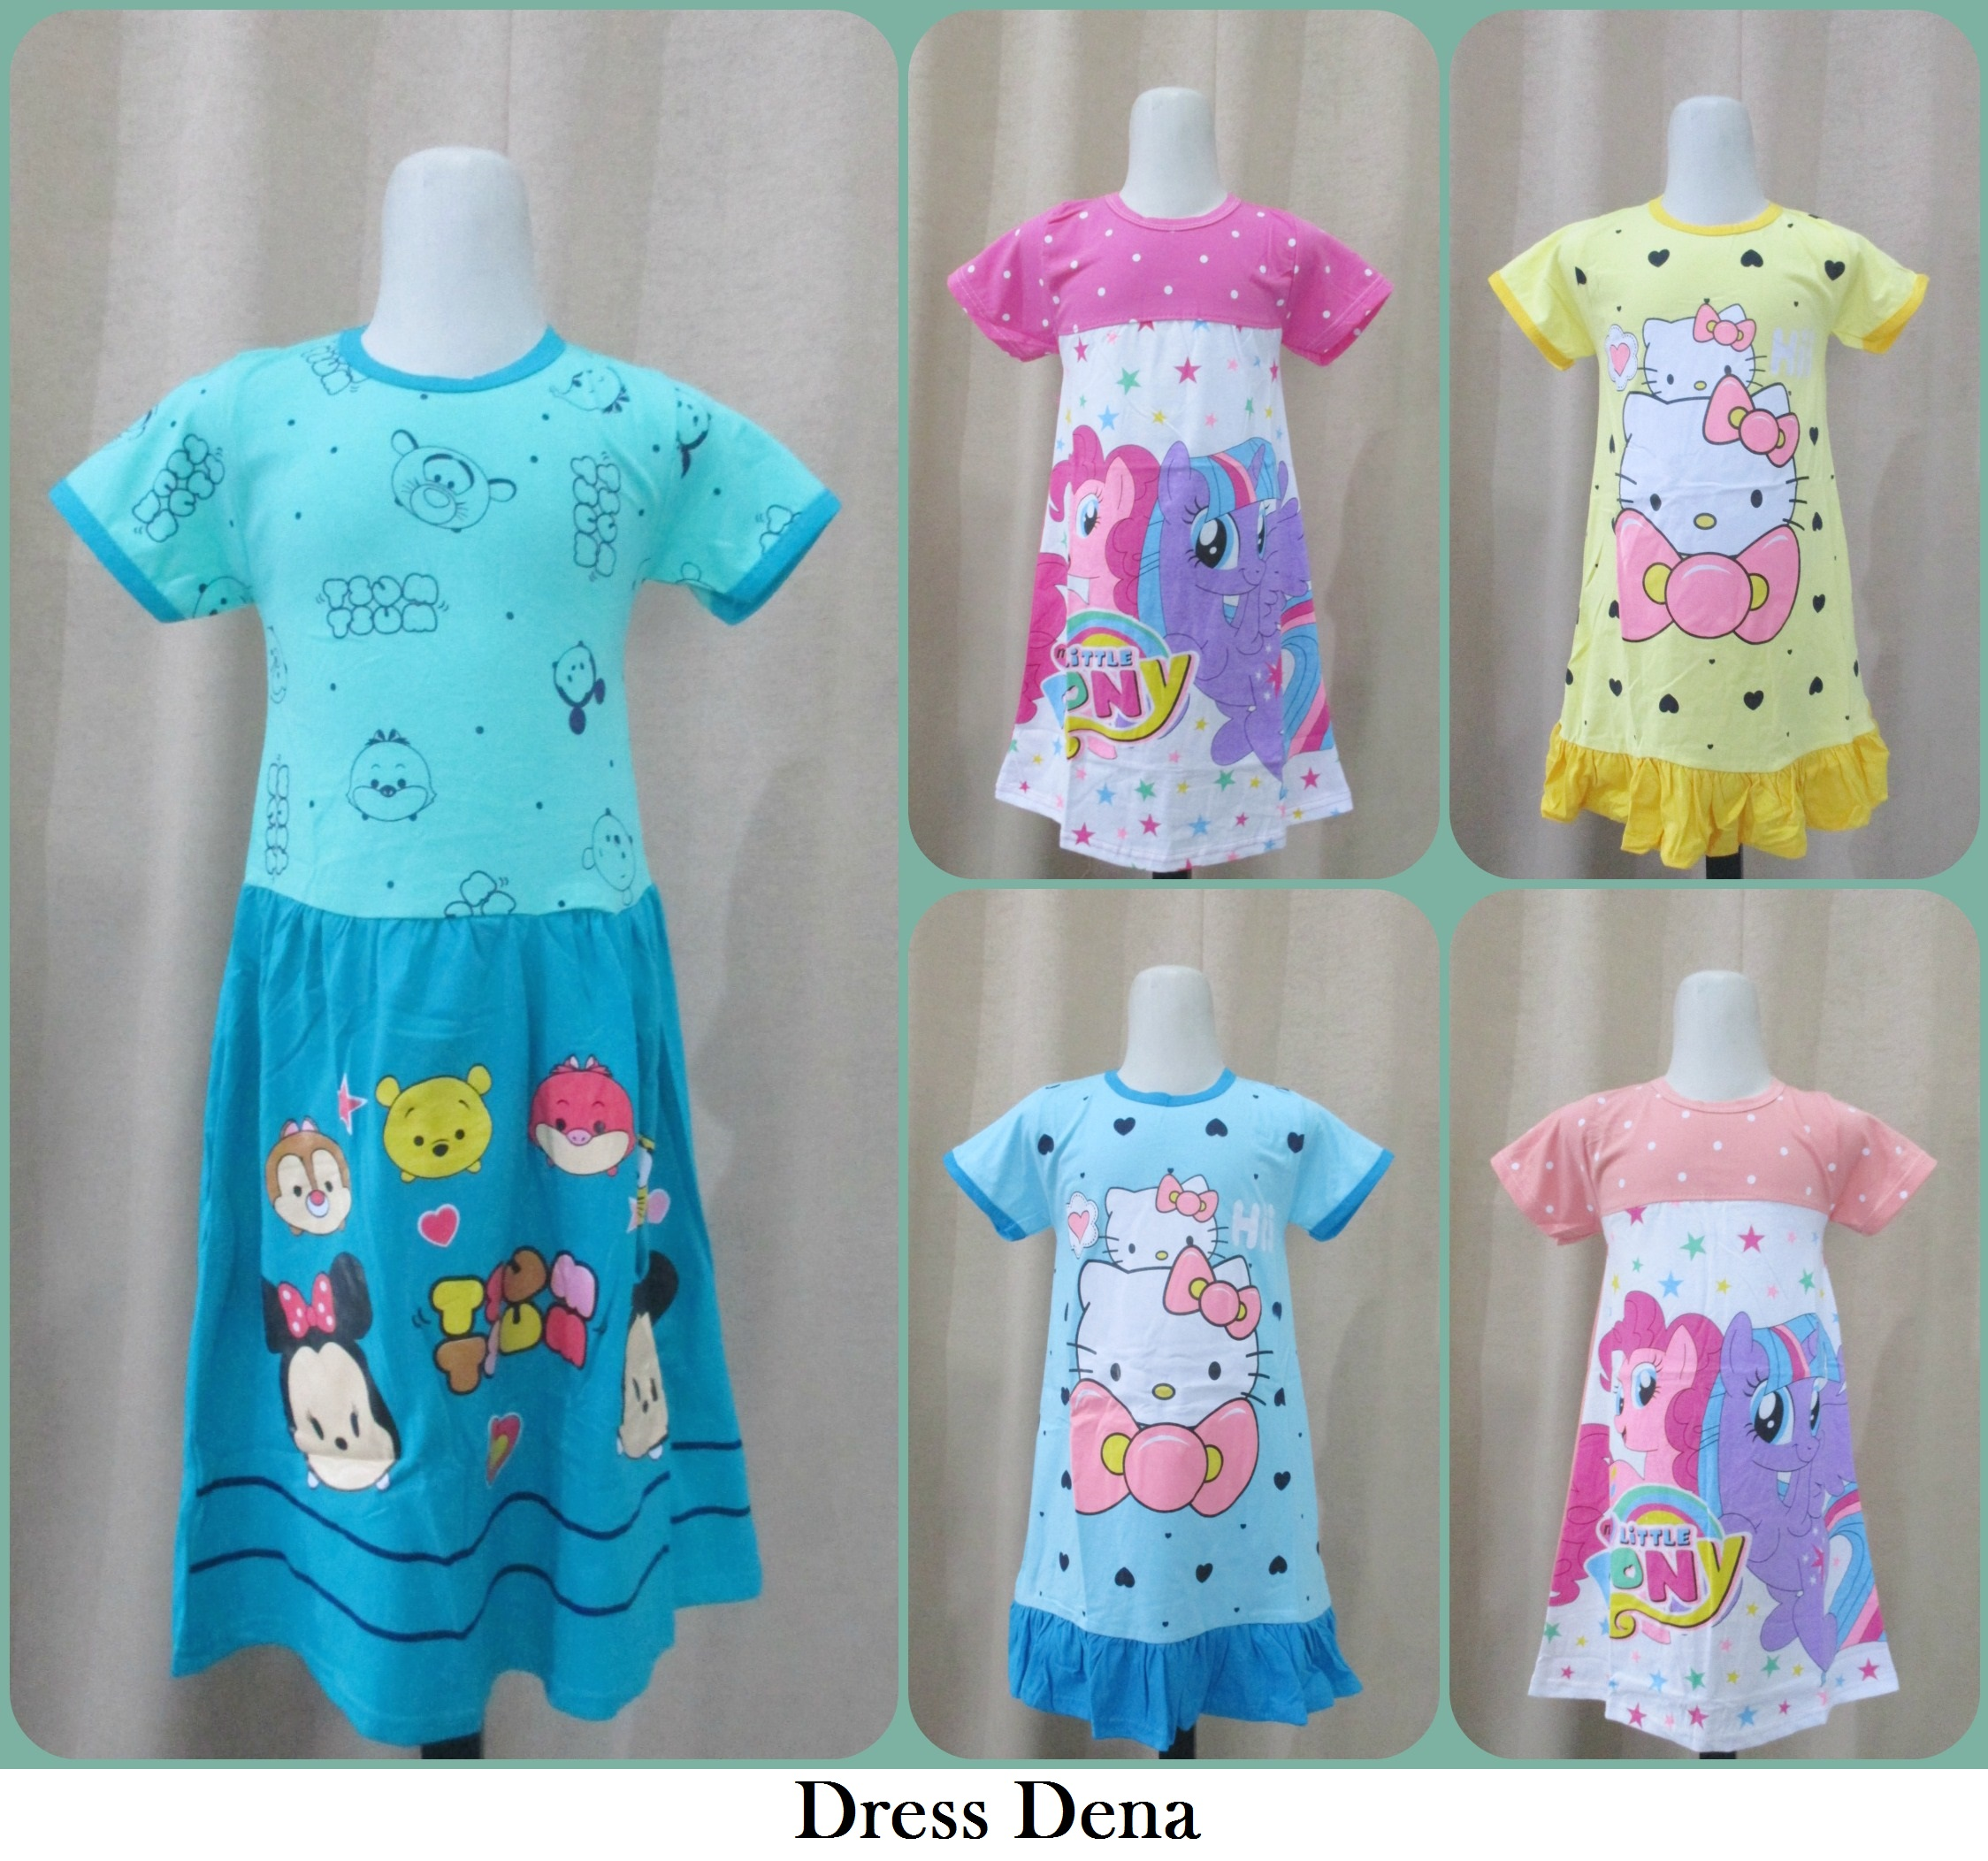 Grosiran Dress Dena Anak Murah Tanah Abang